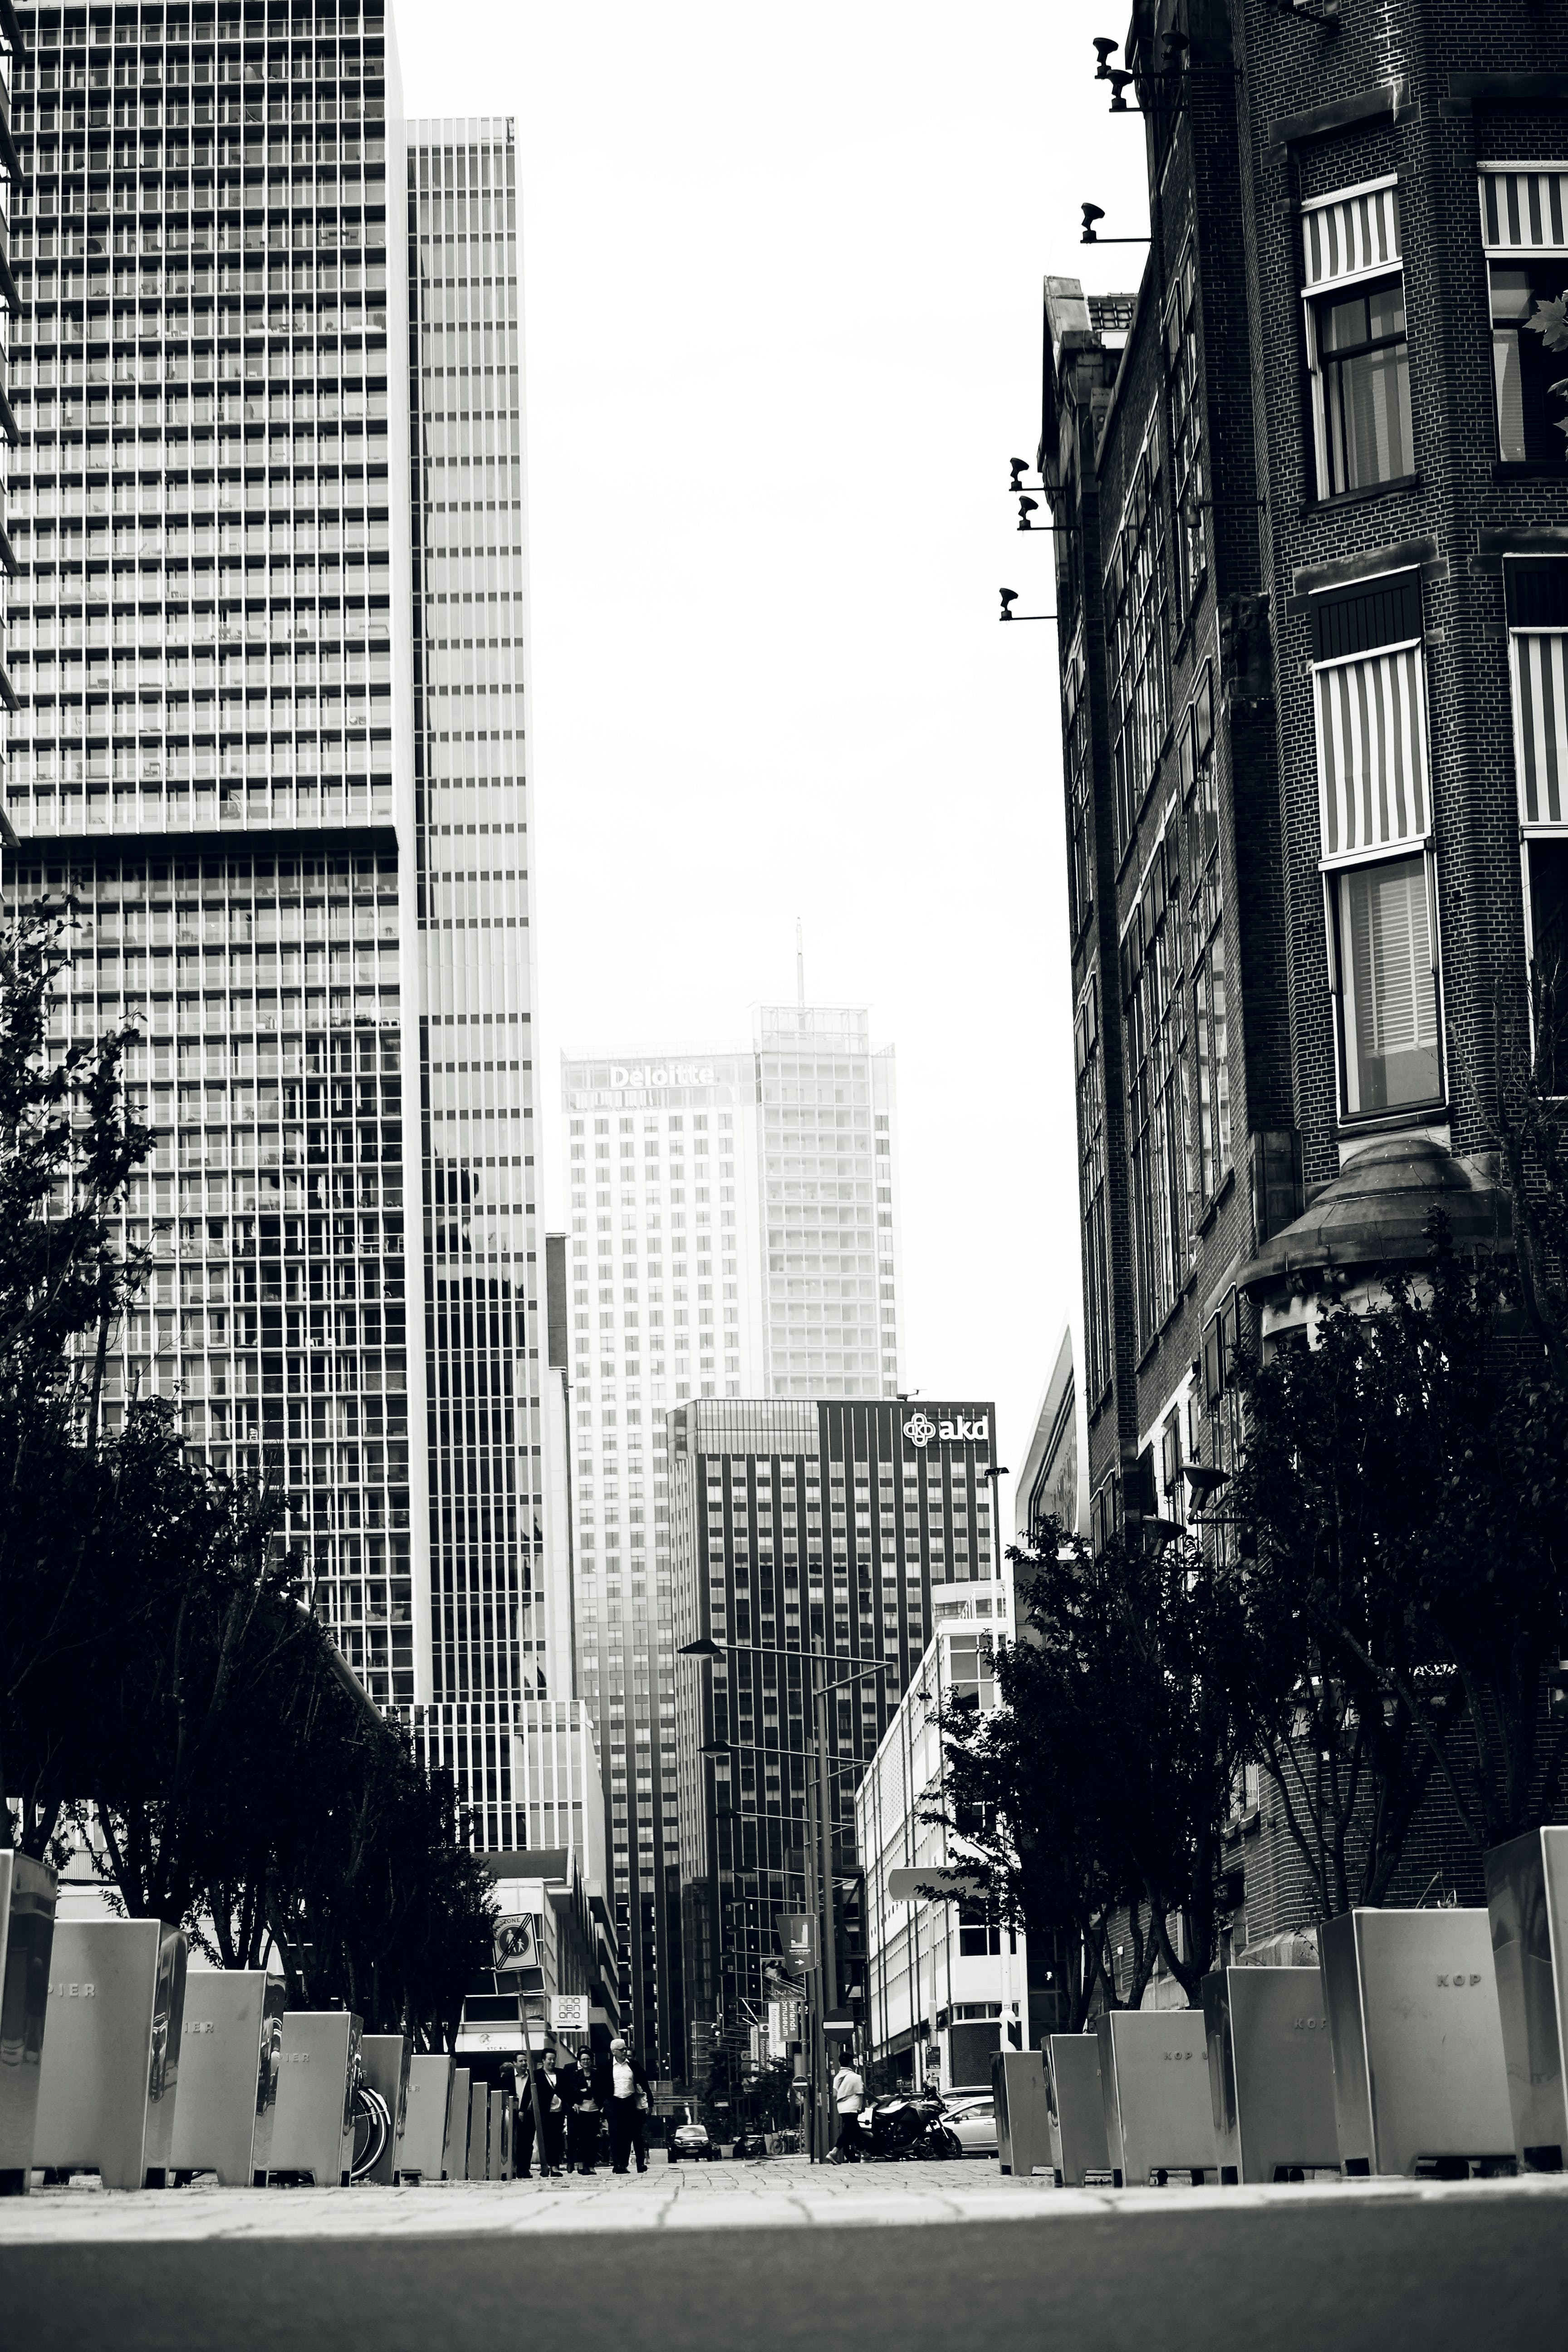 Grayscale of High-rise Buildings